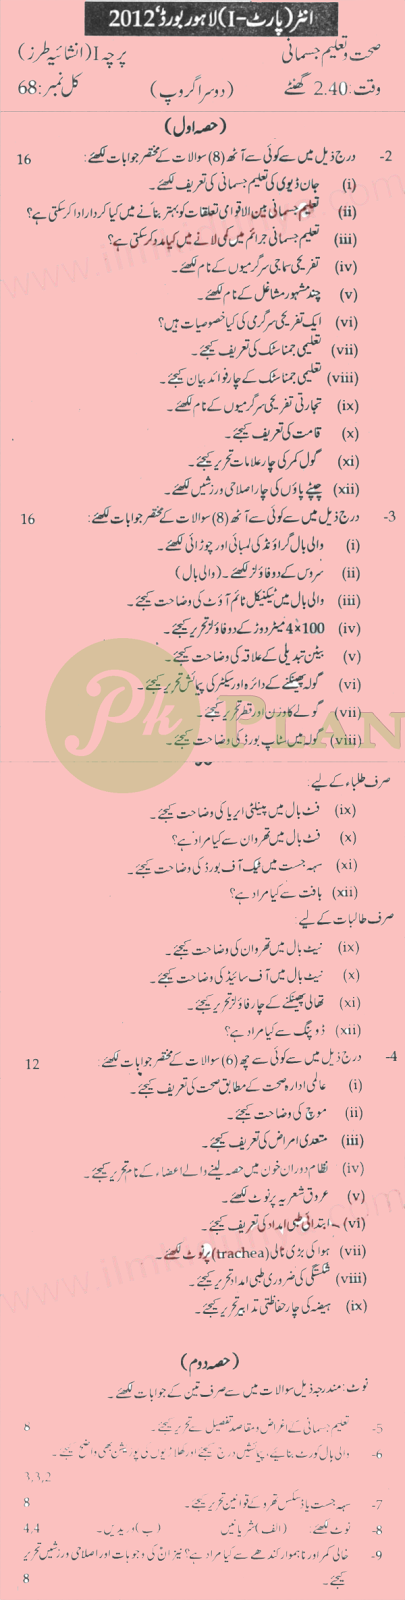 Intermediate Part 1 Past Papers Lahore Board Health Education 2012